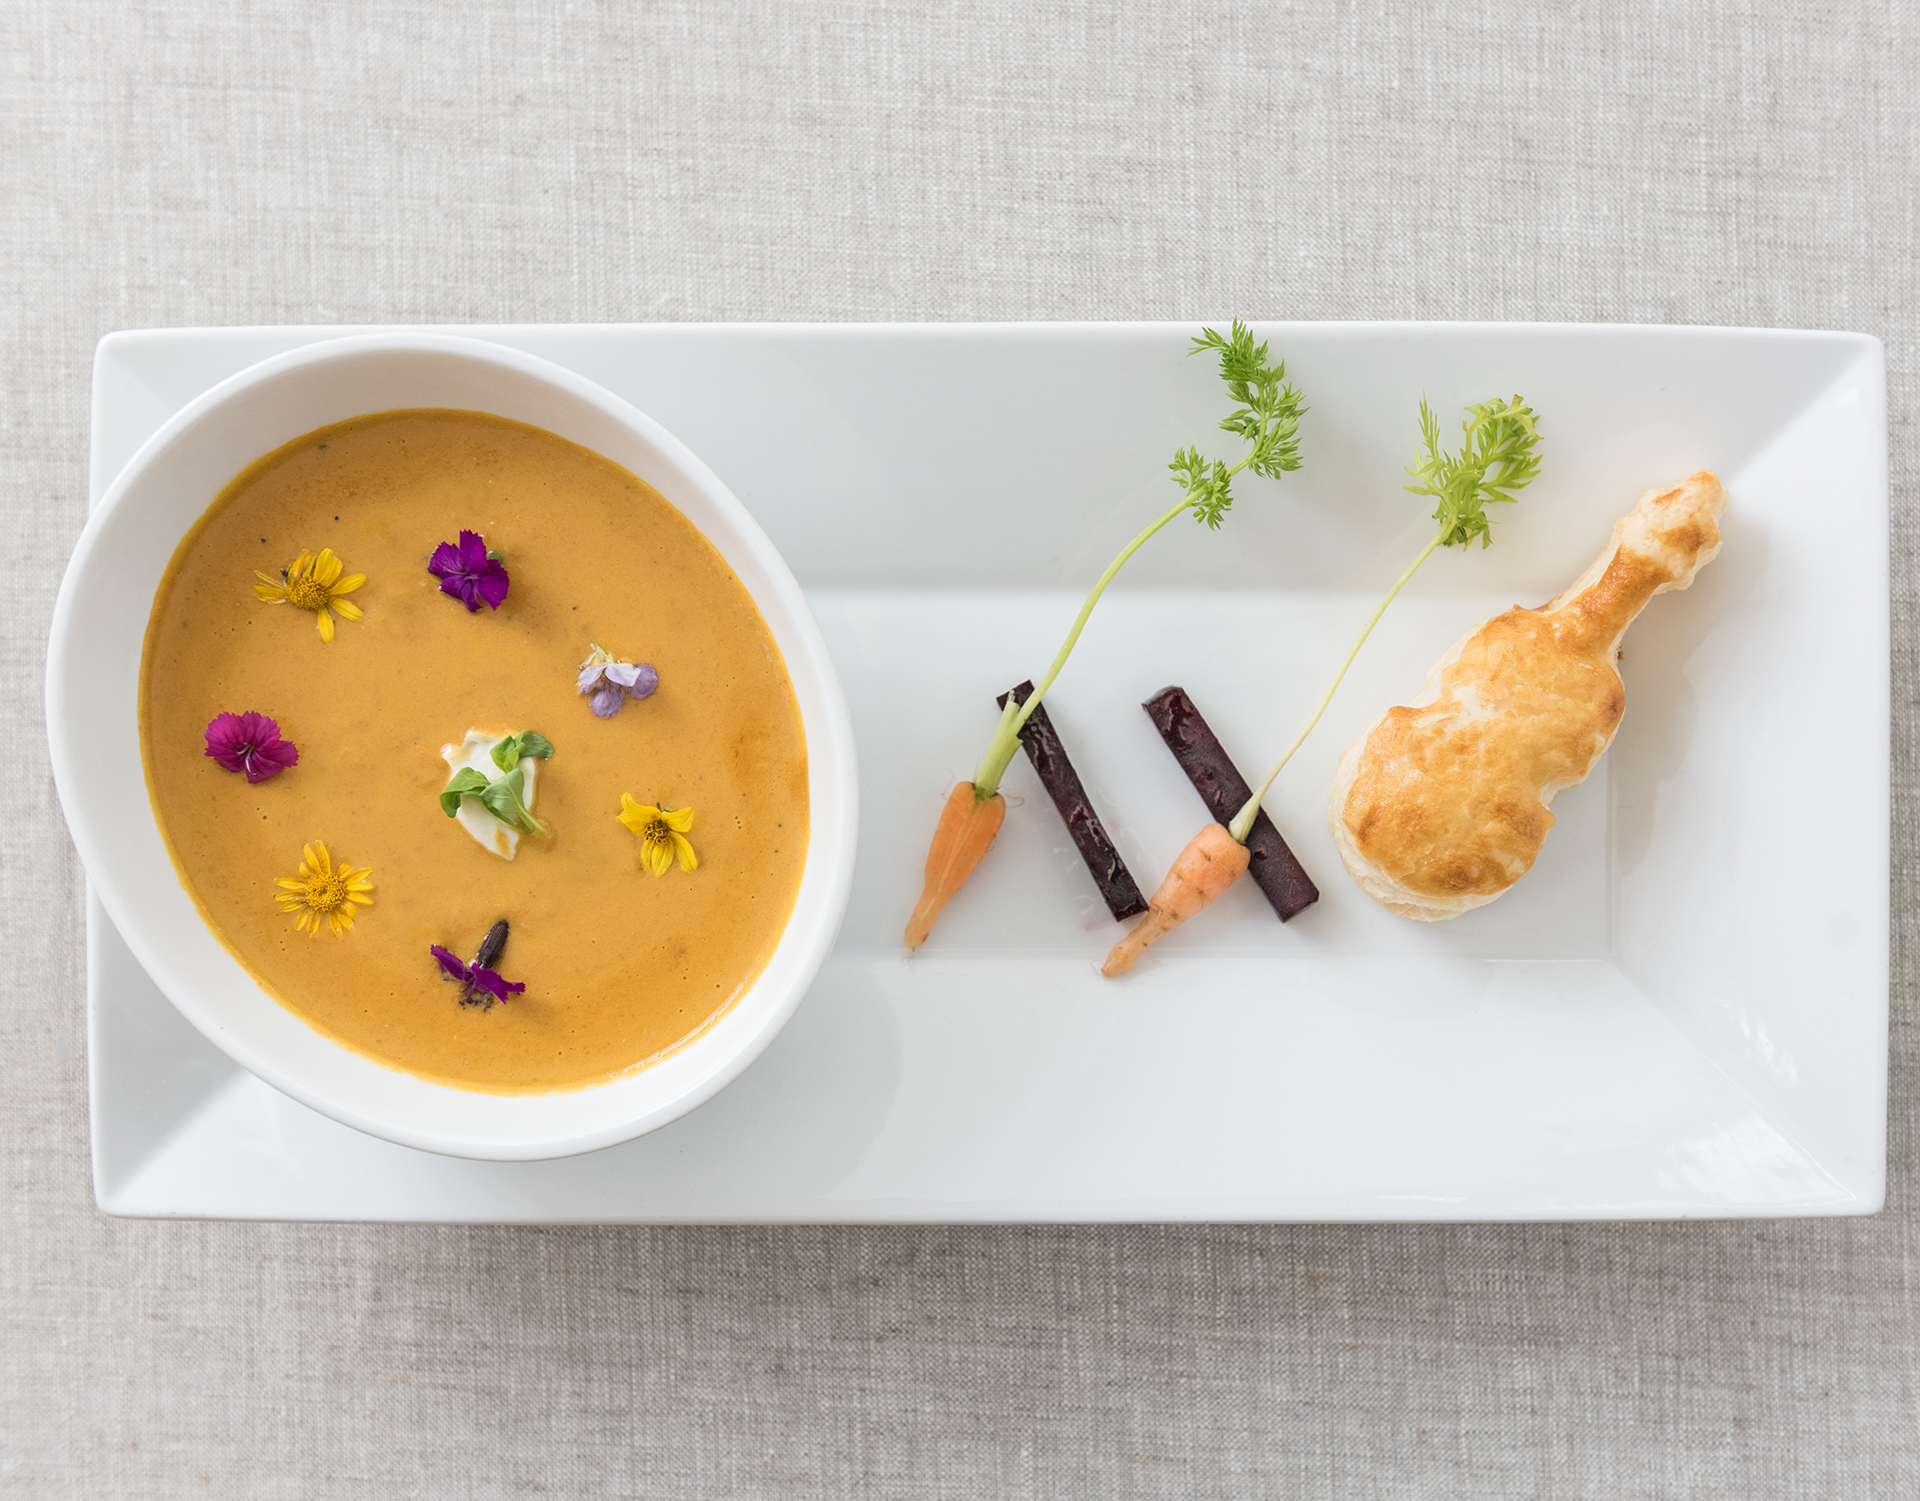 Squash soup with cello-shaped biscuit